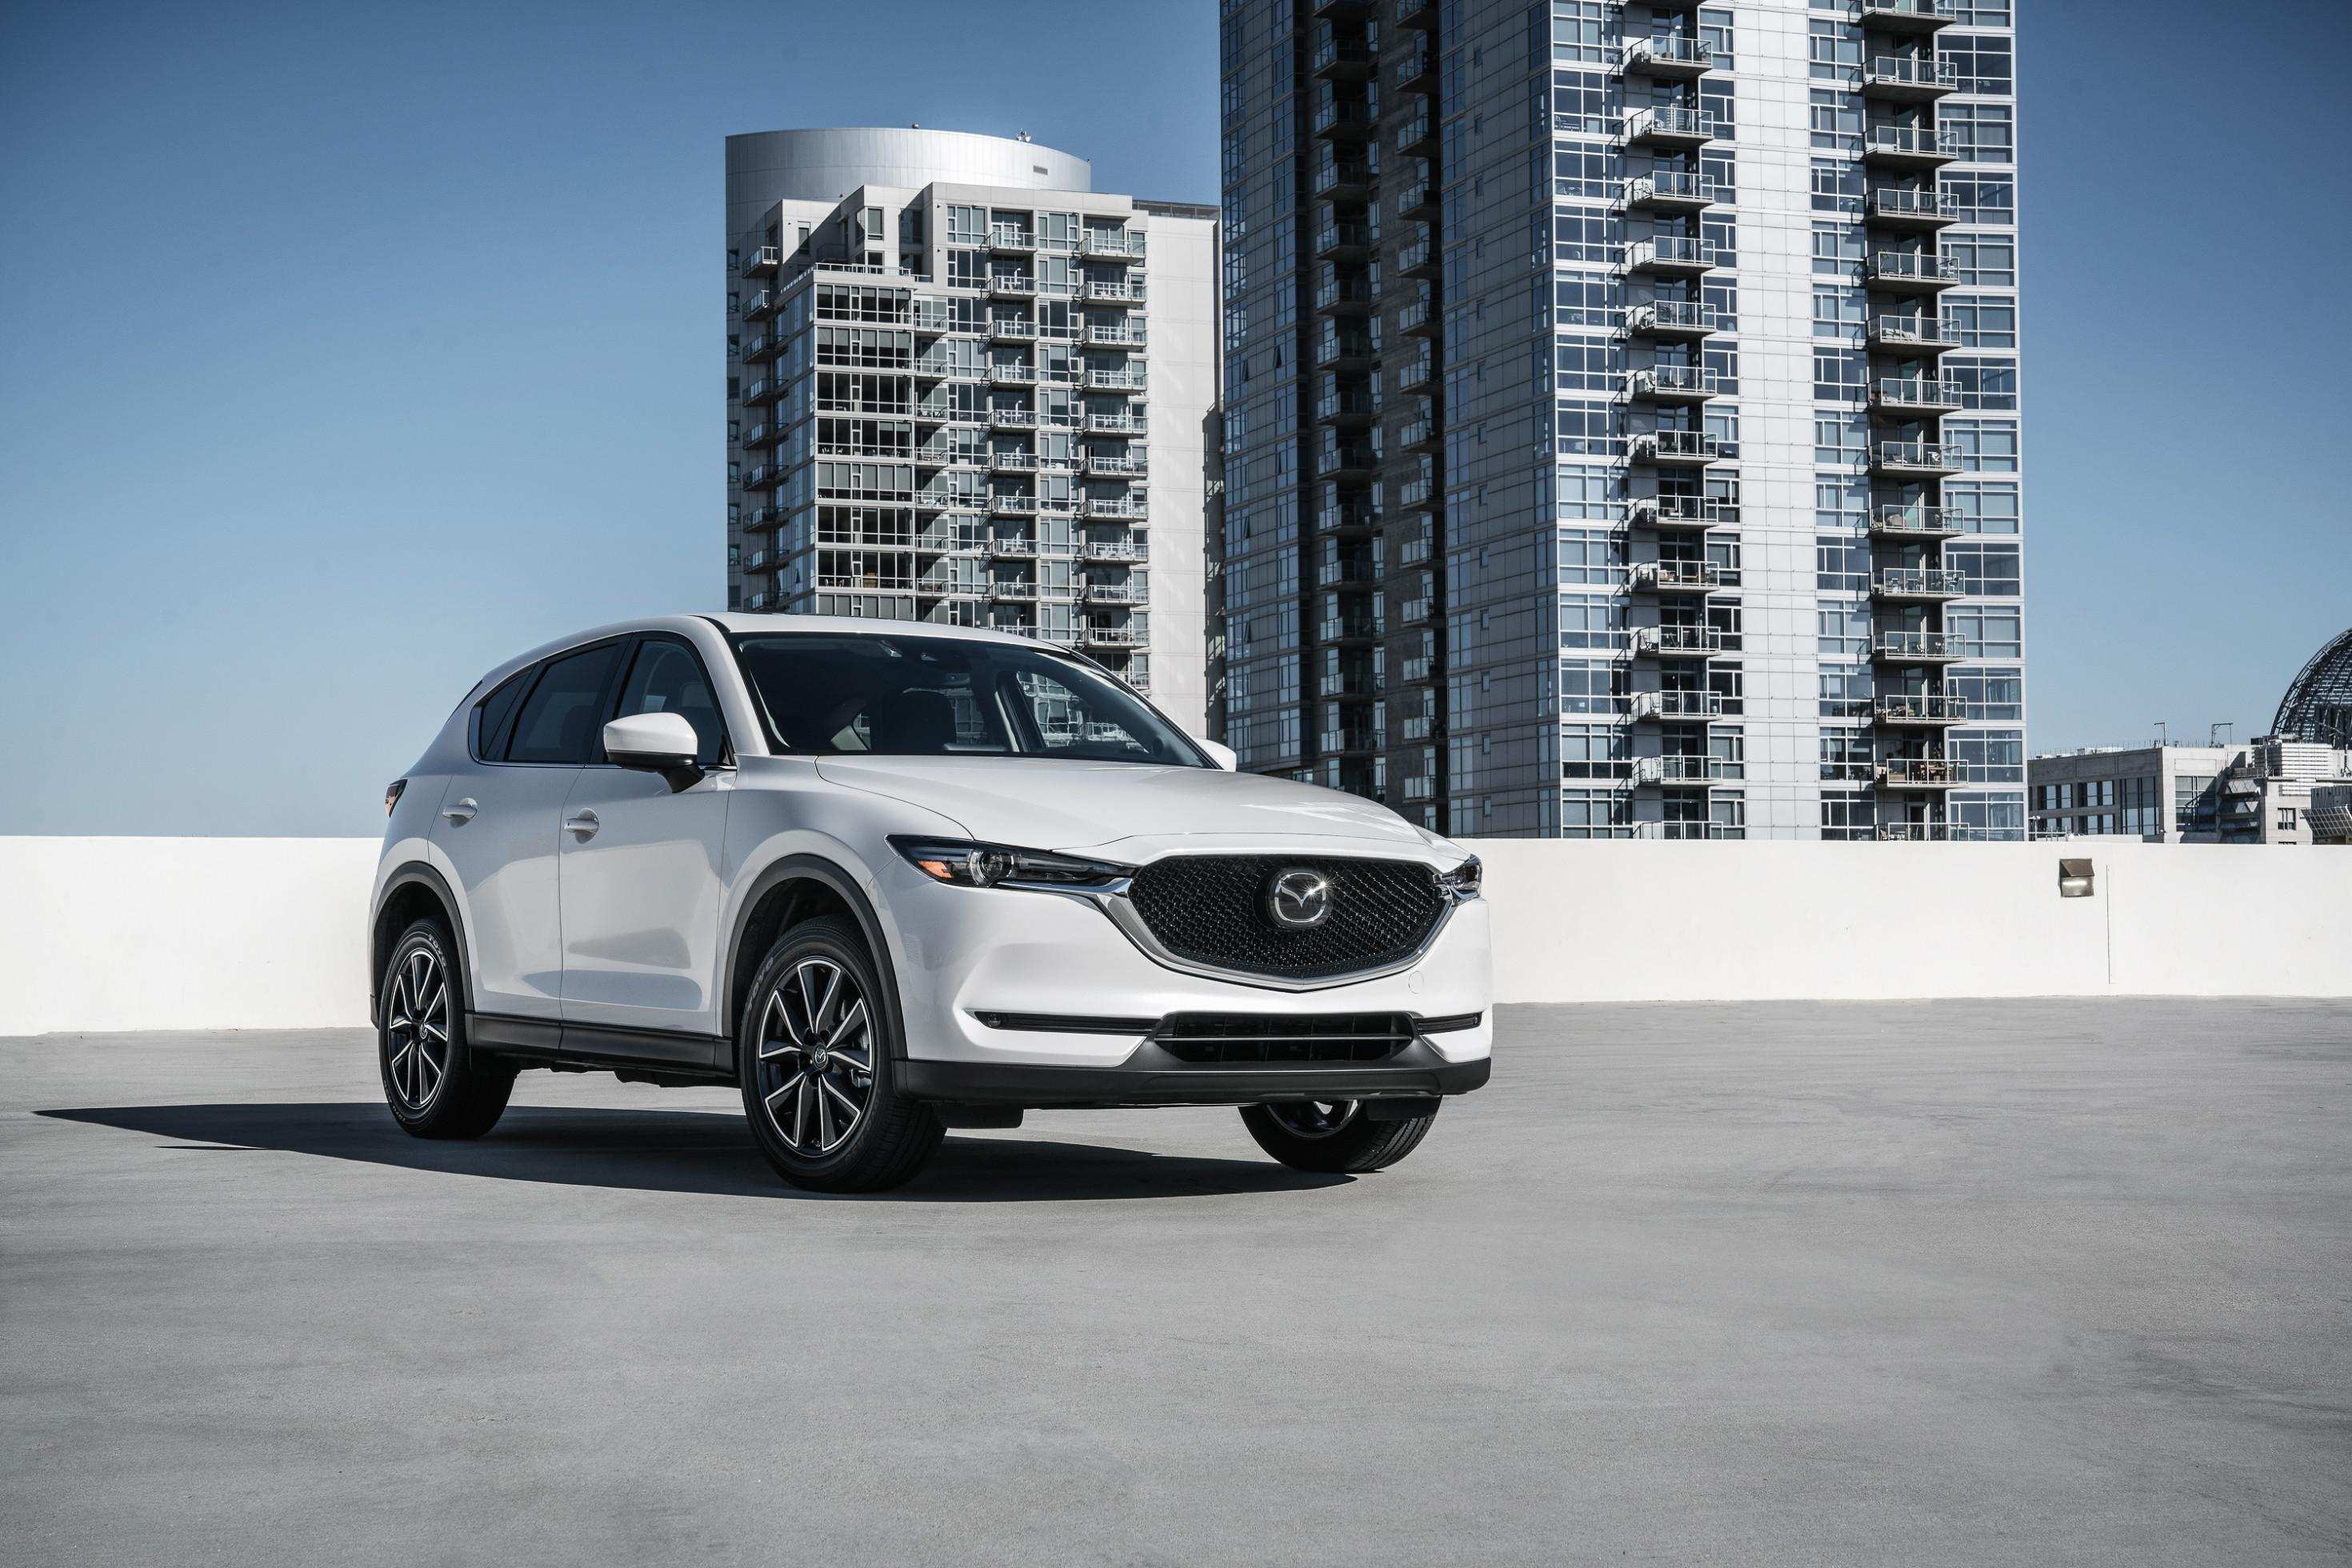 35 All New Mazda Cx 5 2019 White Release Date